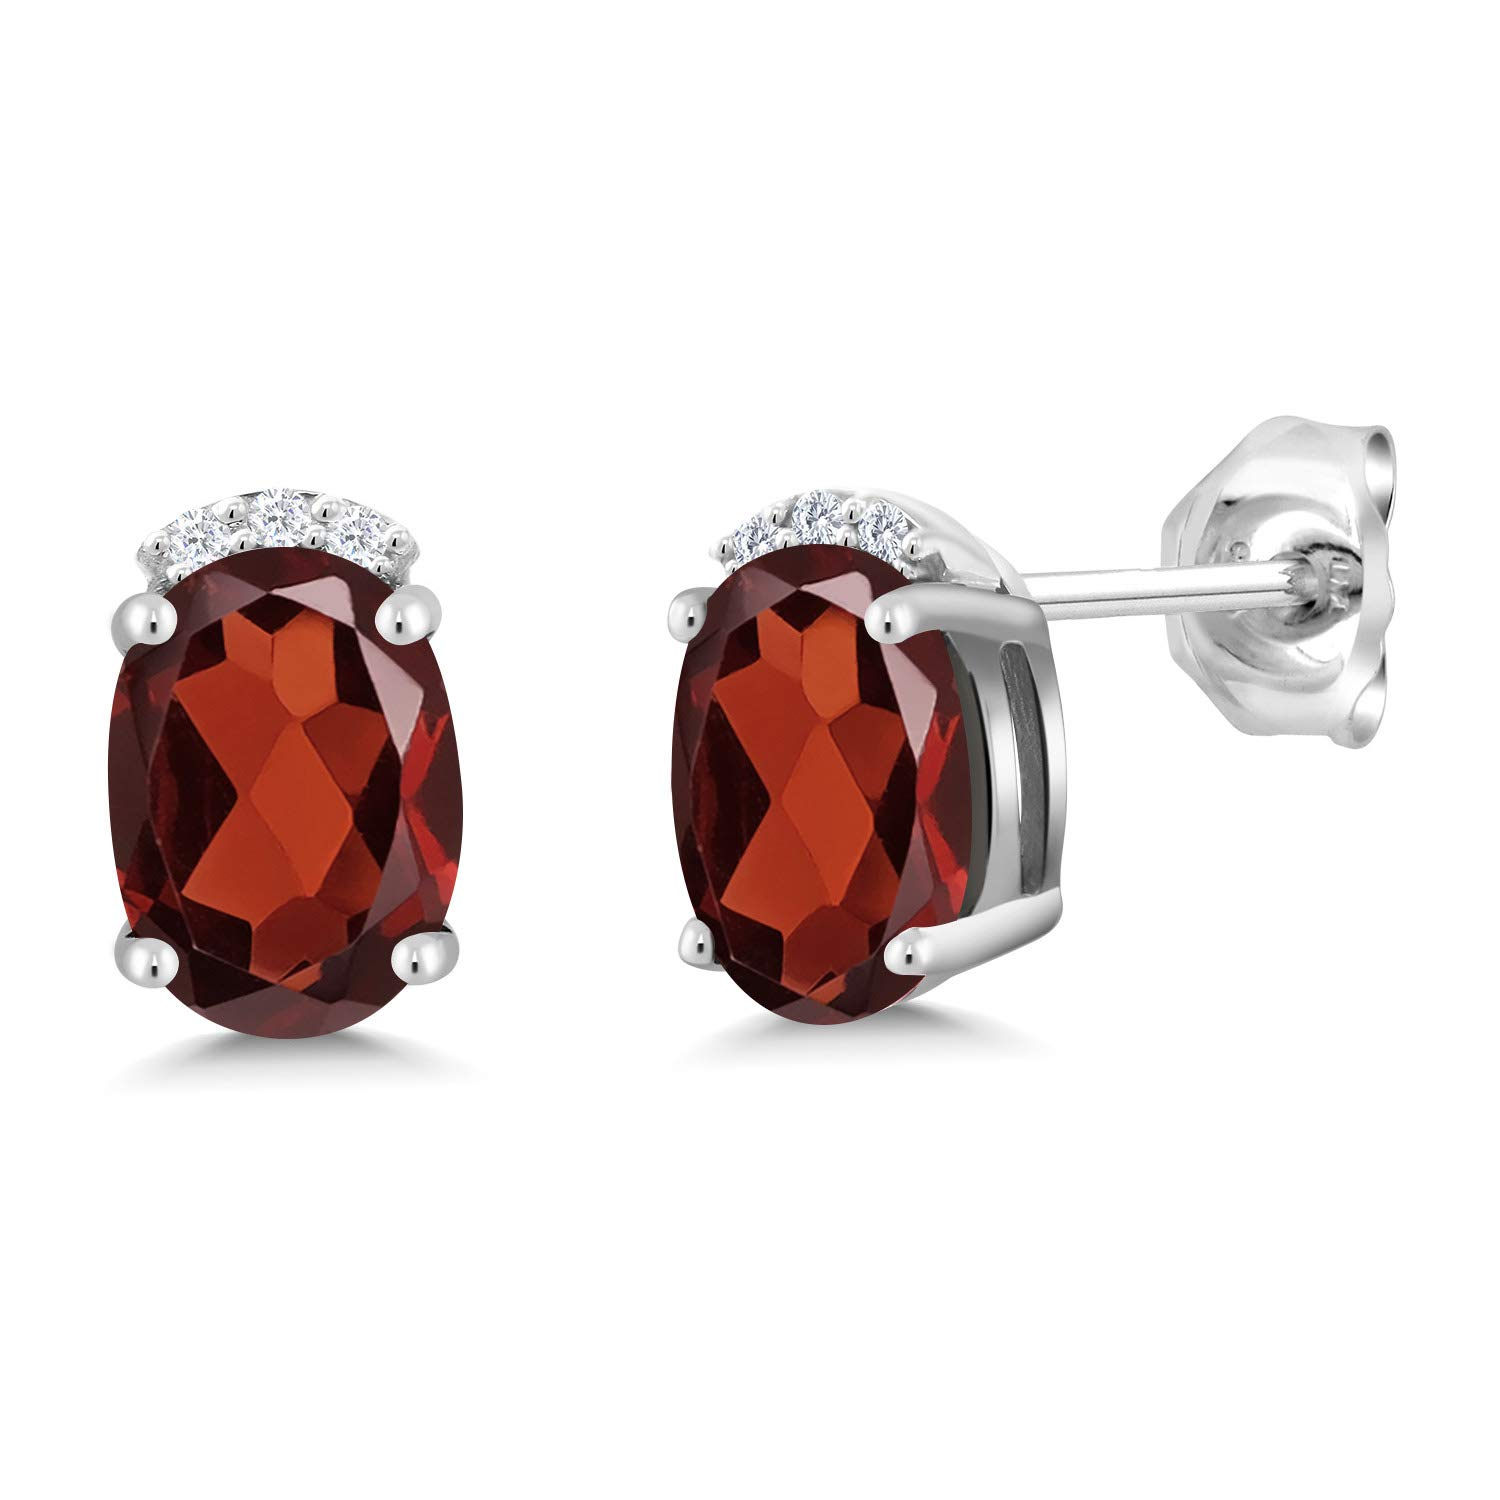 Gem Stone King 925 Sterling Silver Red Garnet and White Lab Grown Diamond Earrings For Women (1.80 Ct Oval 7X5MM)